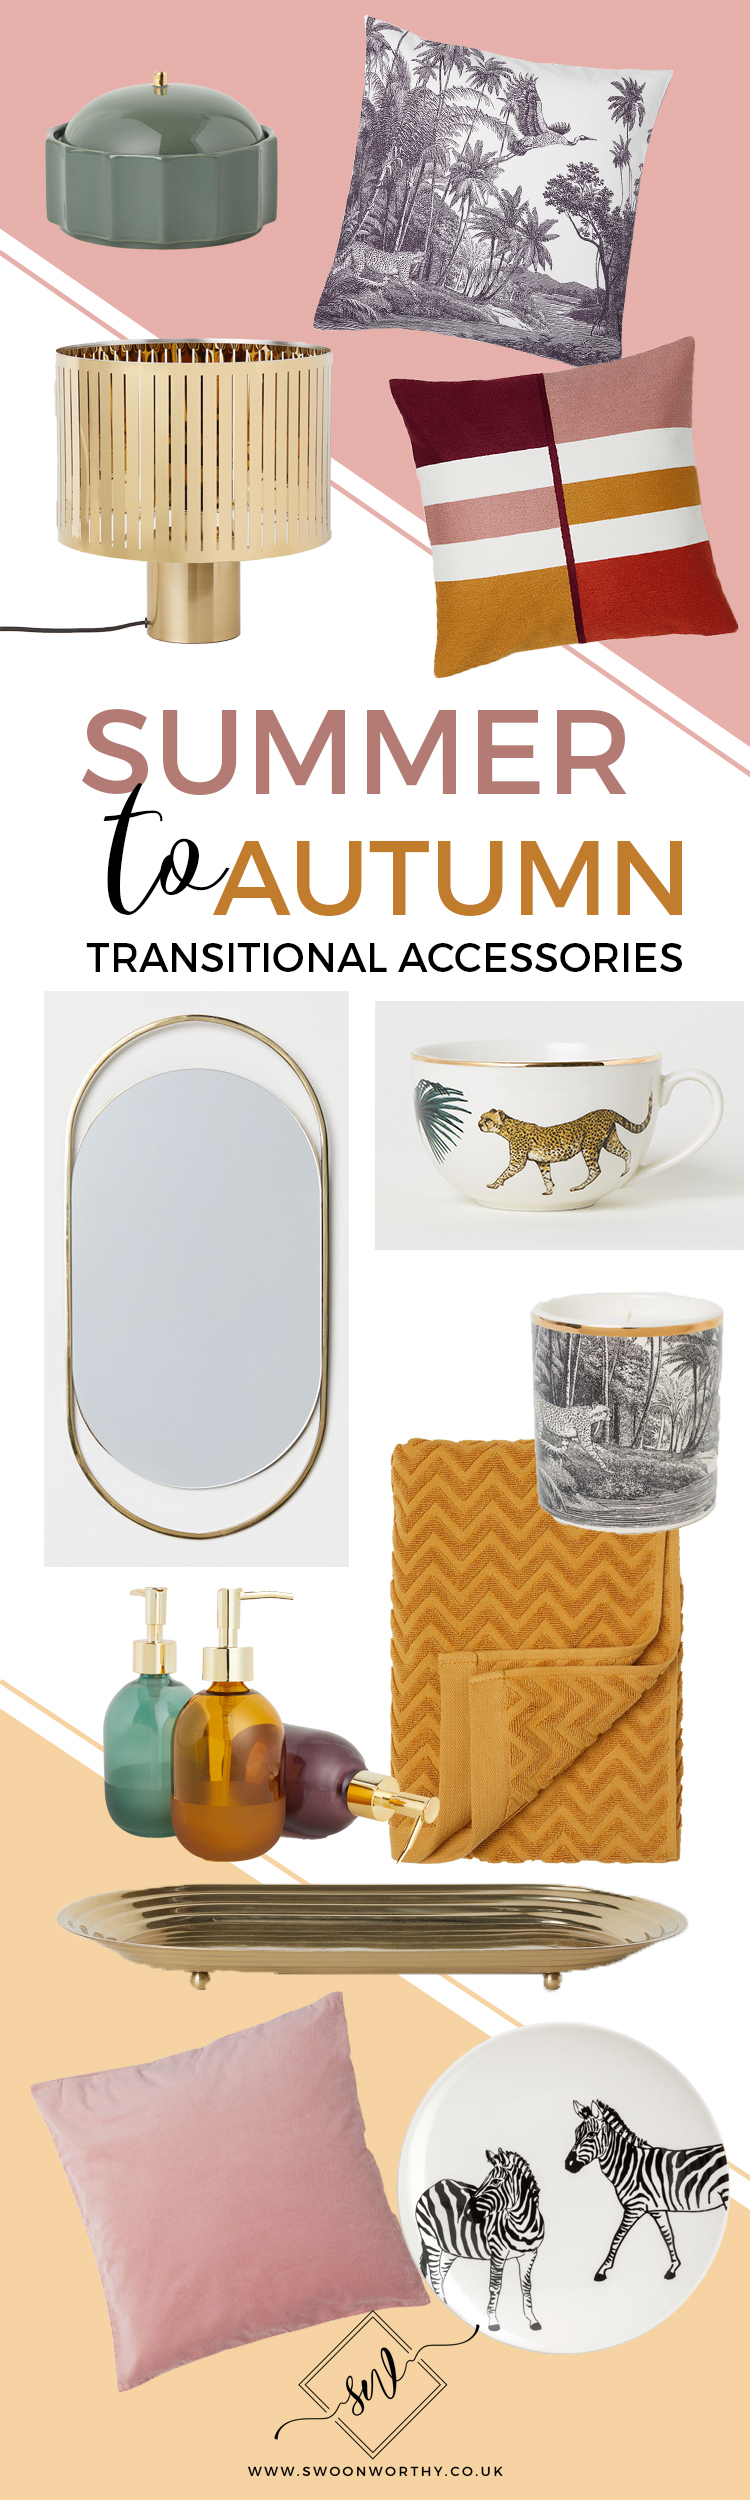 Summer to Autumn Transitional Accessories for Home